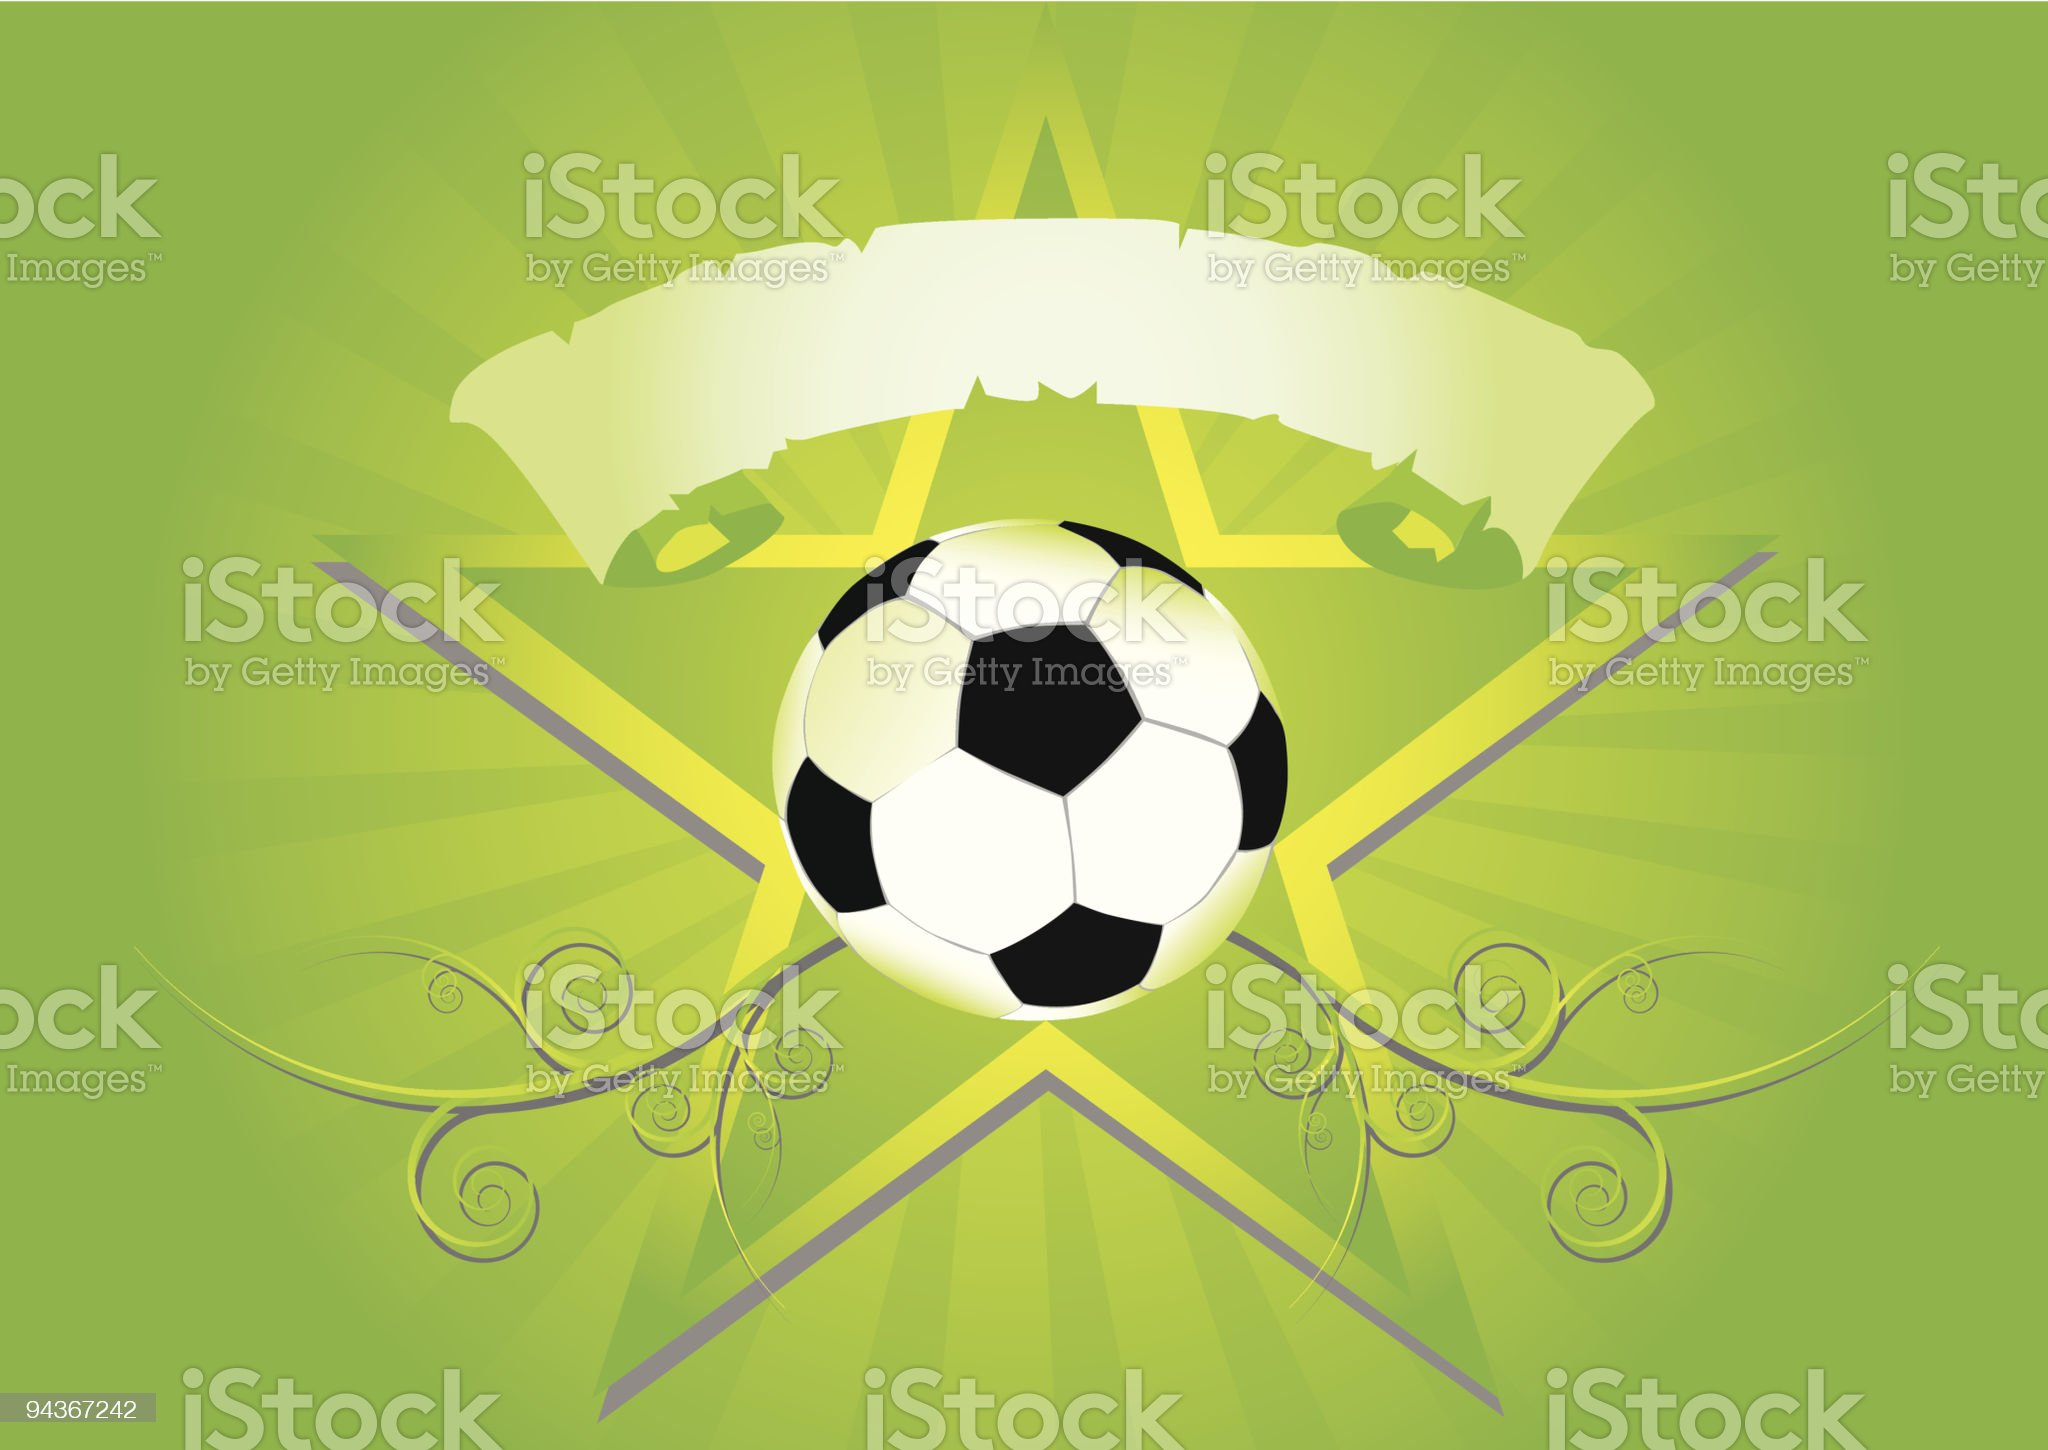 abstract soccer ball with star and spiral royalty-free stock vector art